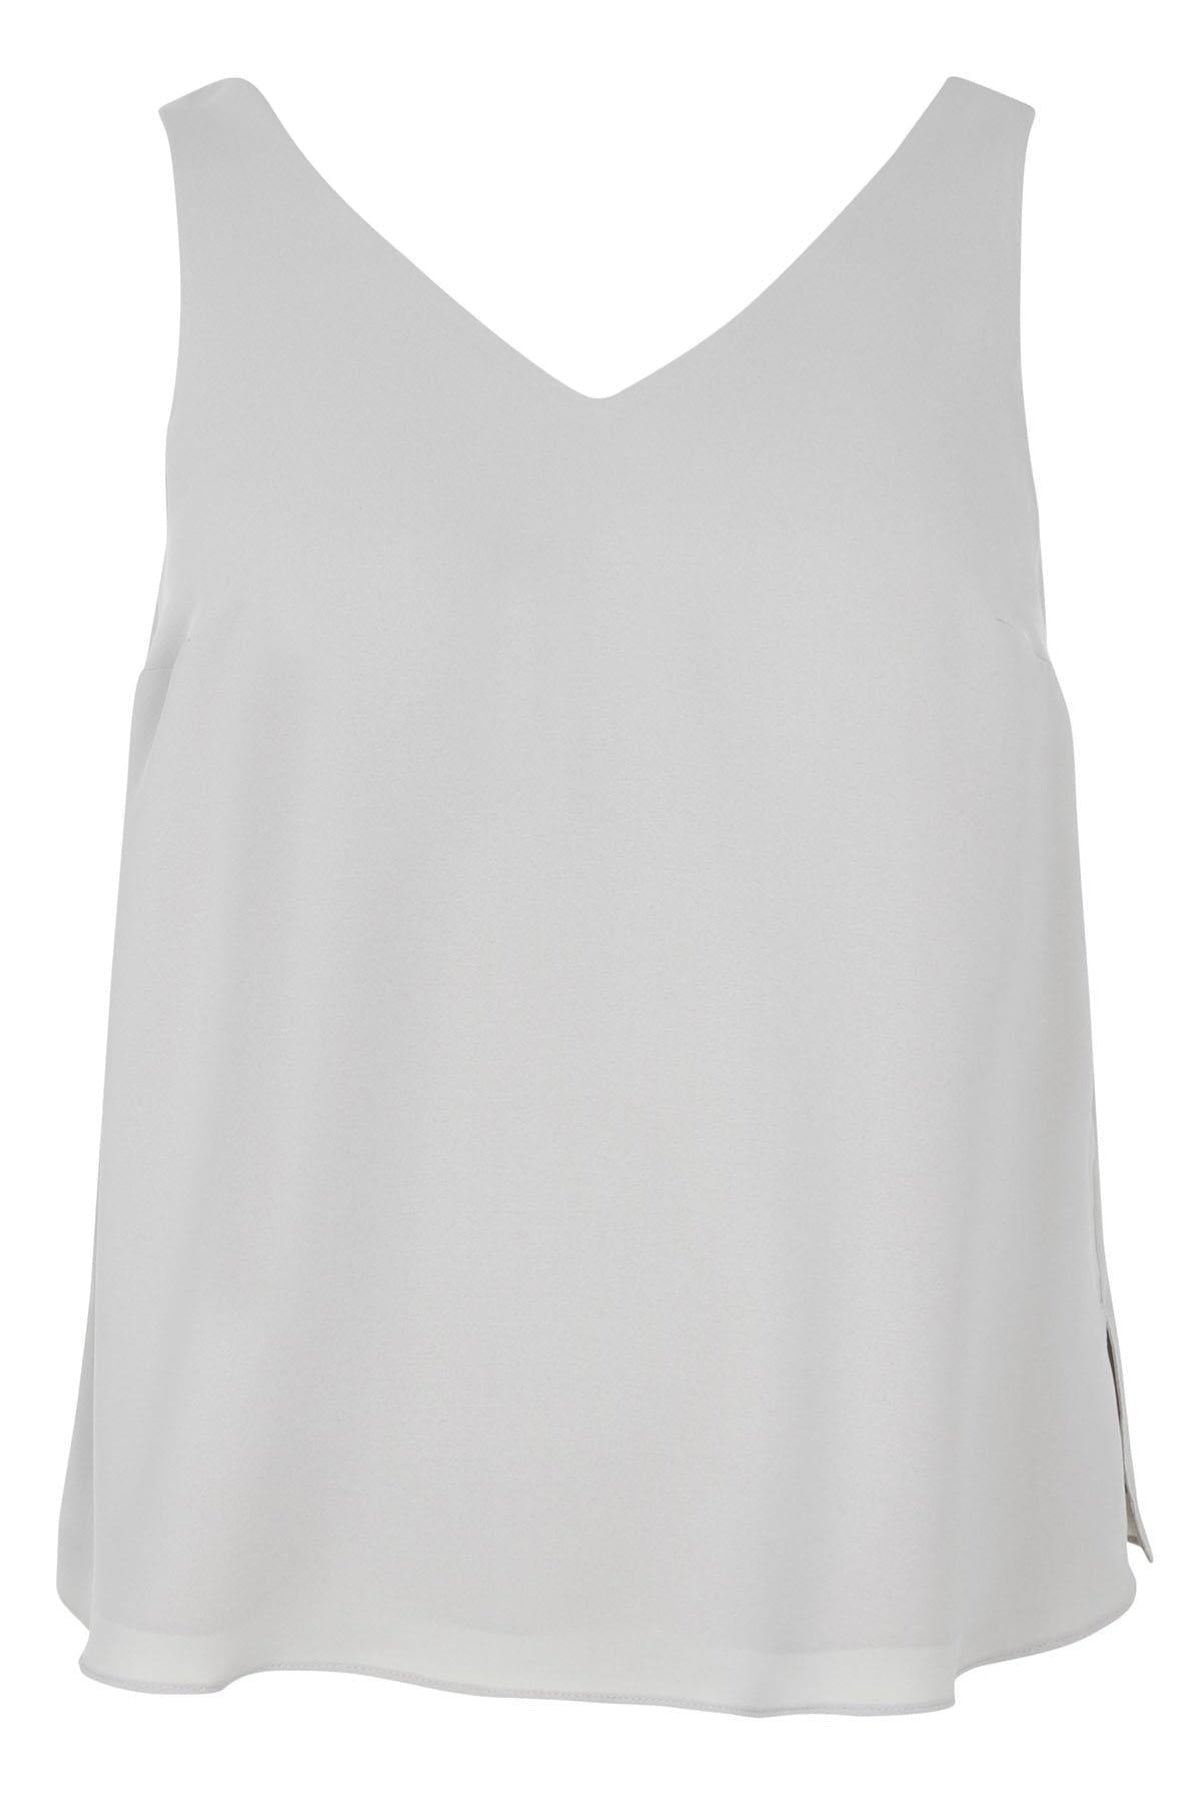 Evans Ex Evans Silver Grey V Neck Plus Size Vest Top | Secret Label